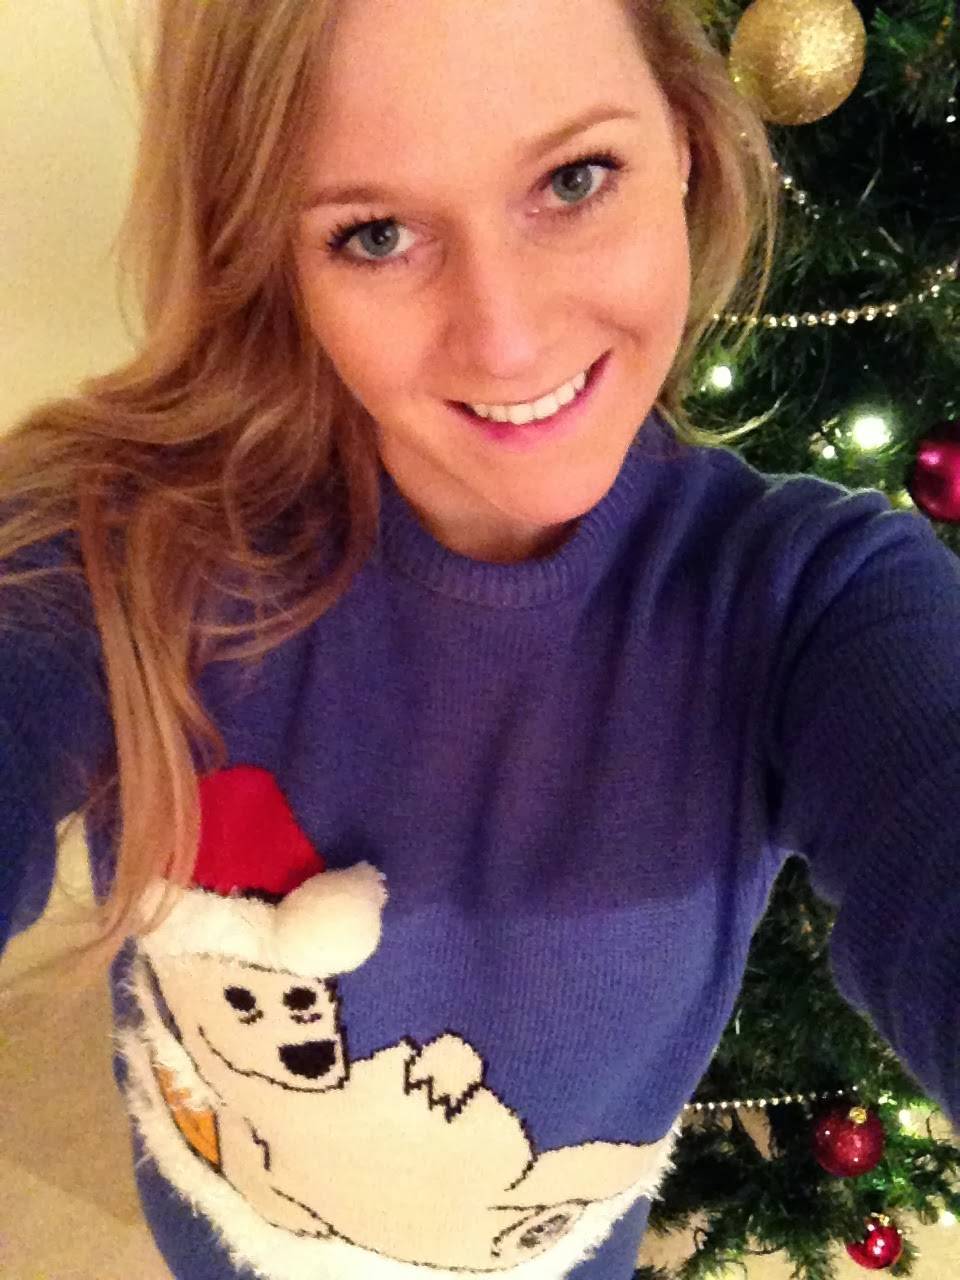 Christmas Jumper - Save the Children Seasonal Selfie